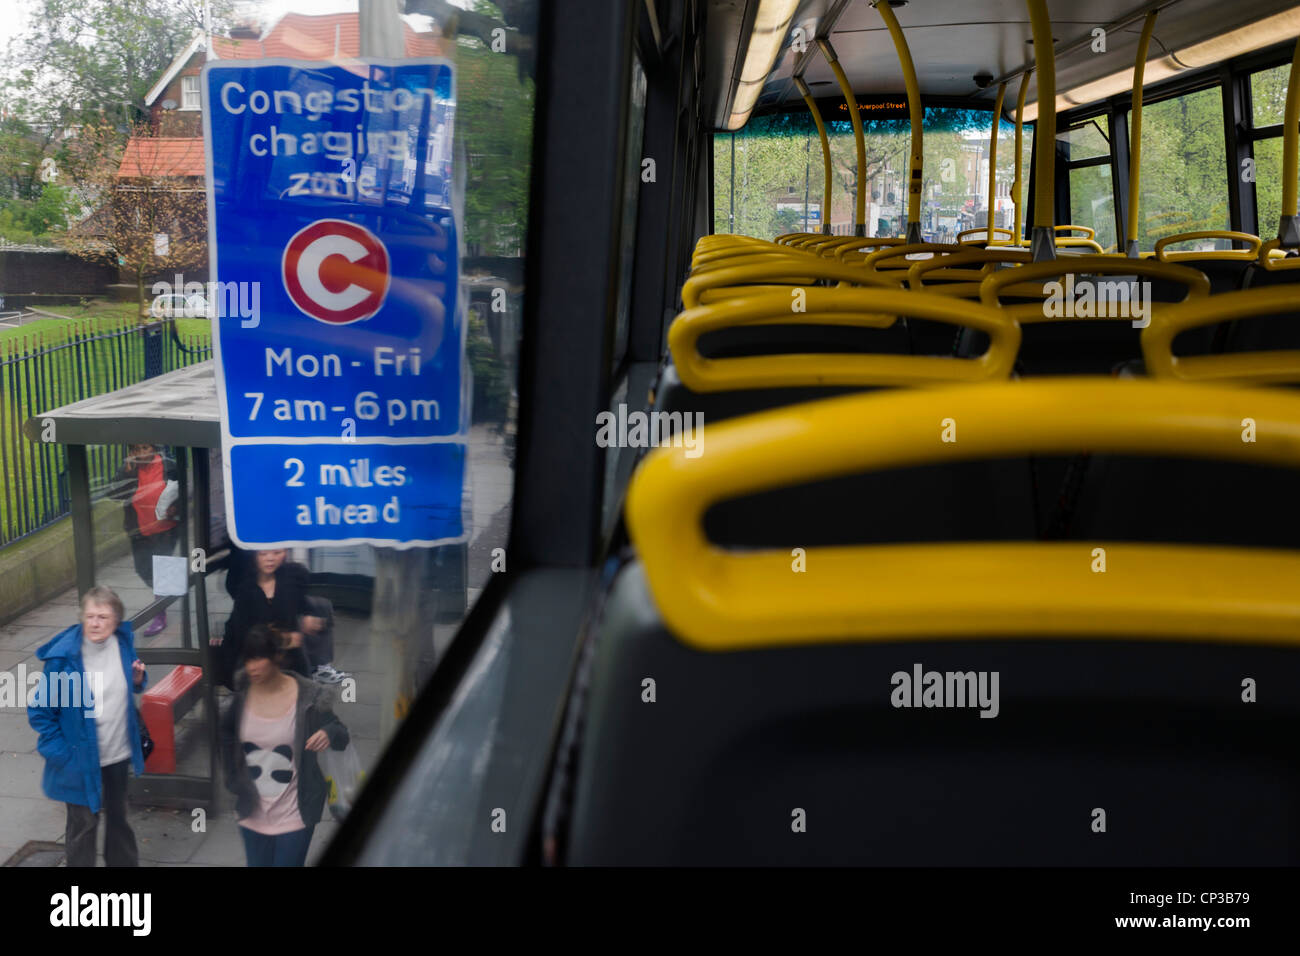 Empty top deck of London bus stopped at a bus stop with a congestion information sign. - Stock Image